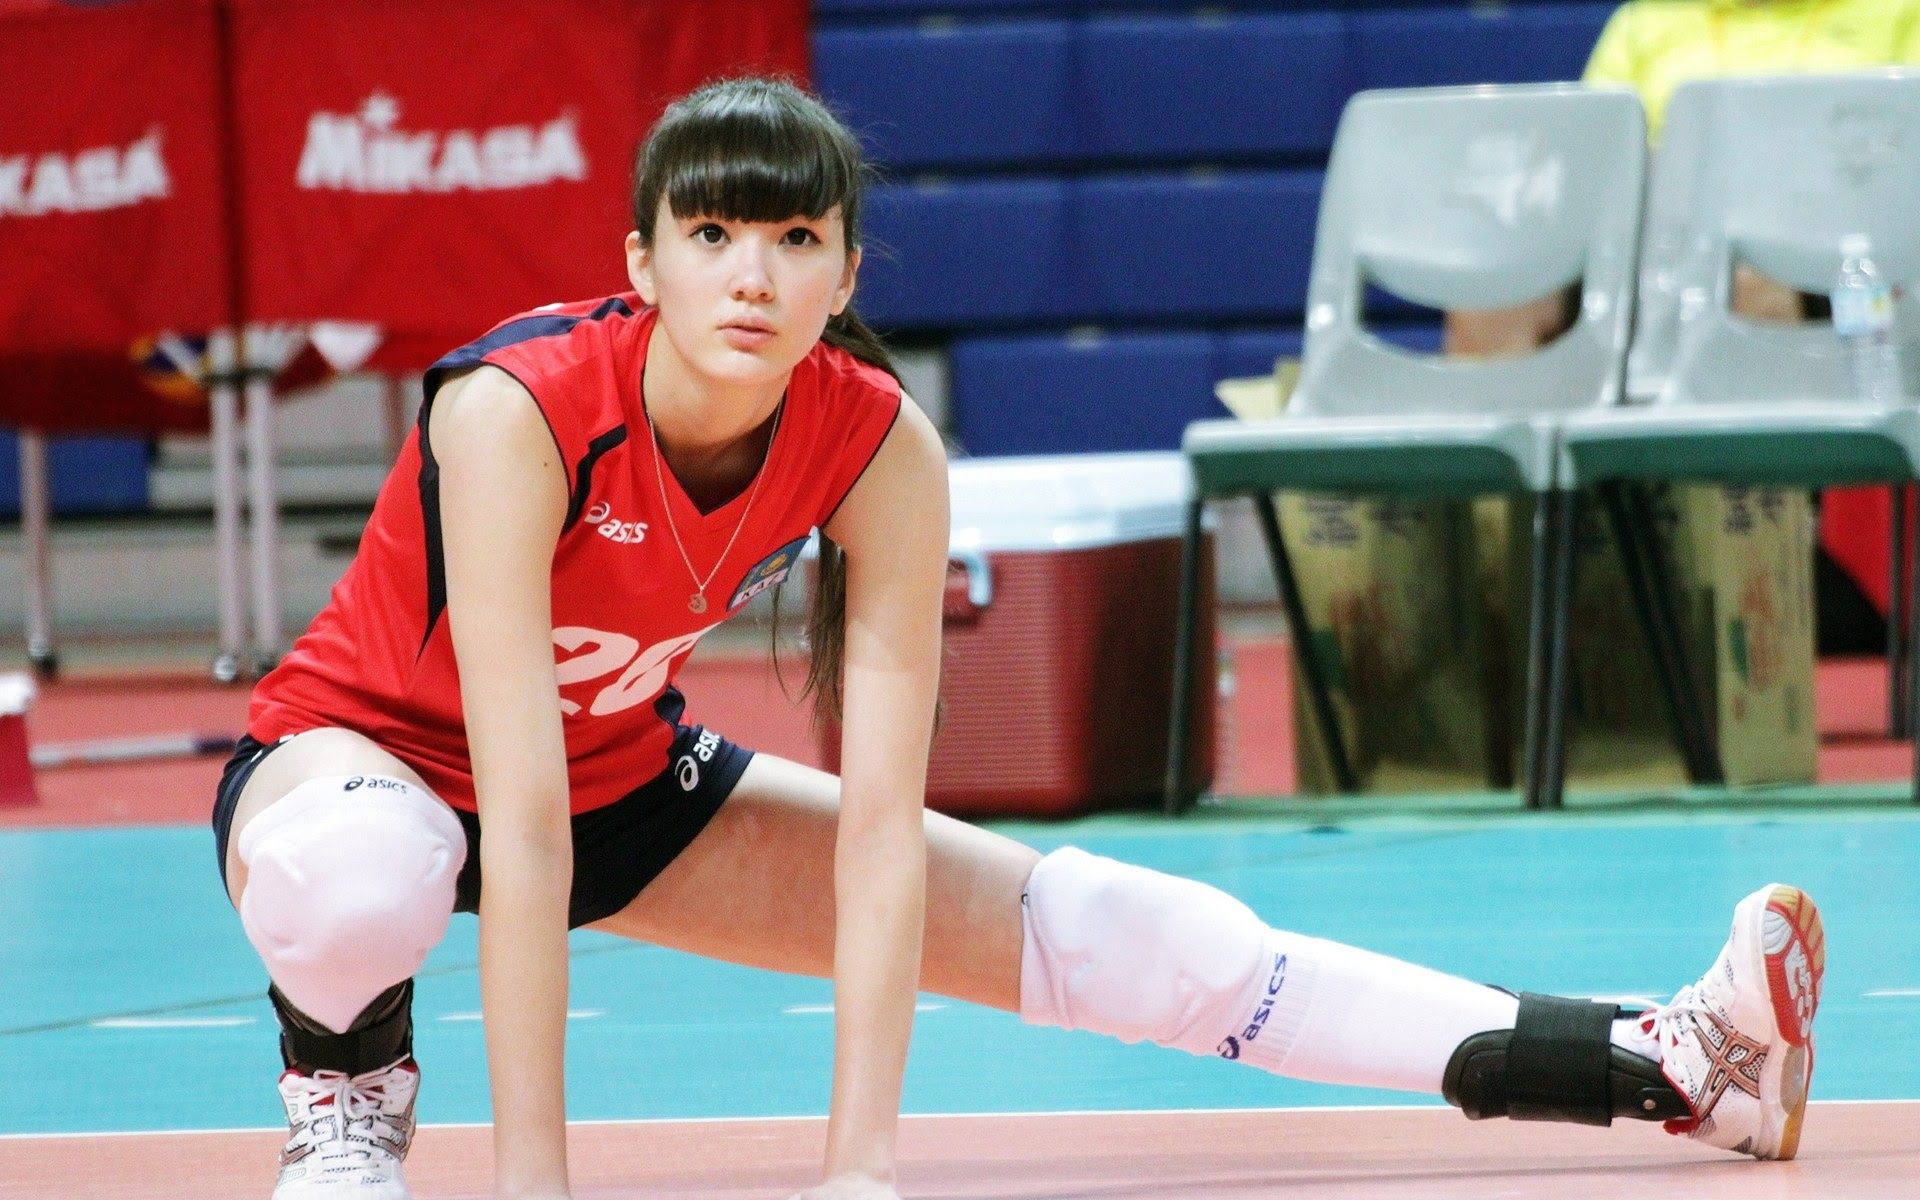 Sabina Altynbekova In Action Pemain Bola Voli Spice Girls Pria